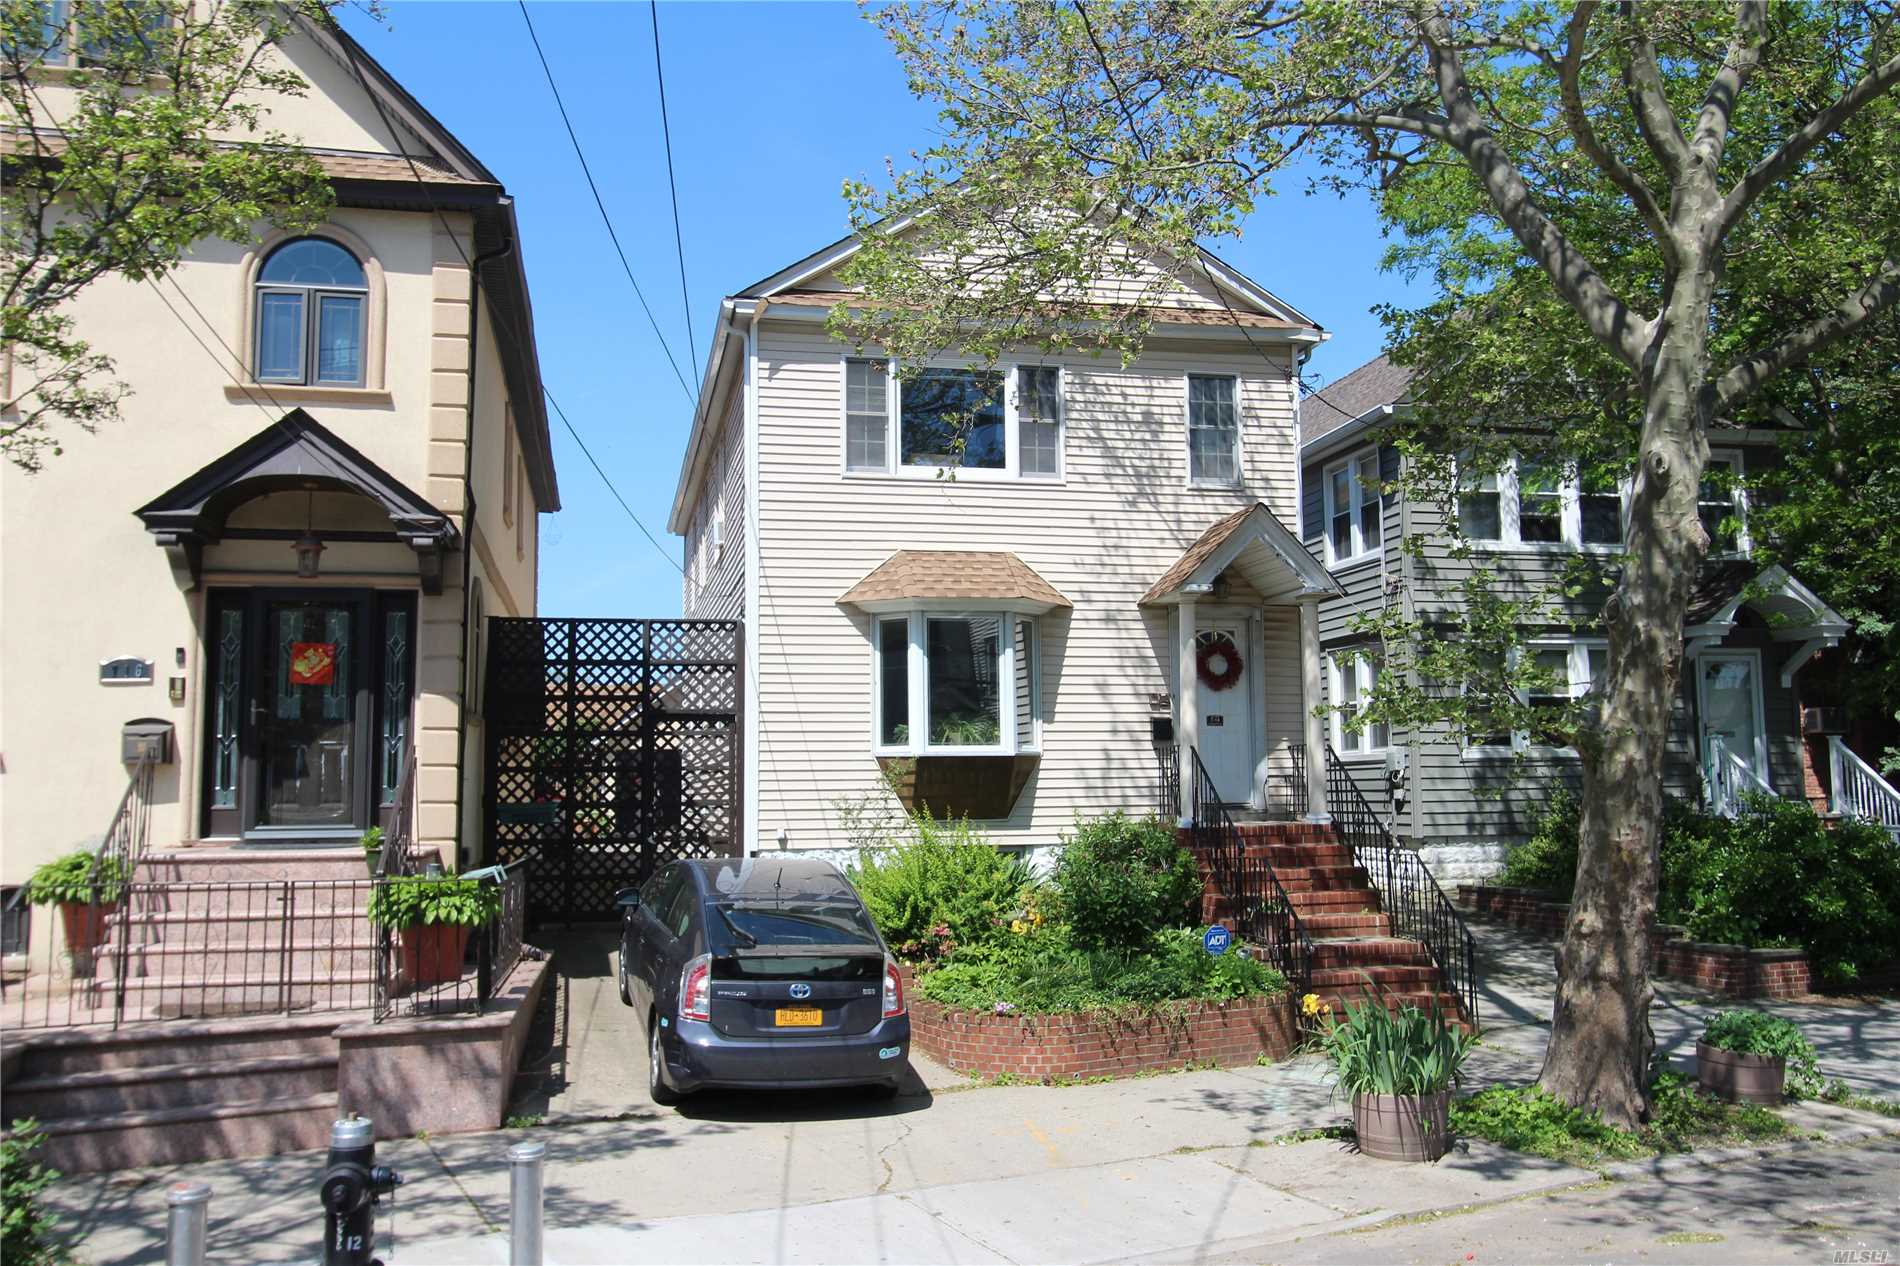 Detached Two Family Home. 31 X 120 Lot Size. Building Size 20 X 58 1st fl 20 X 48 2nd fl. 3 Bedroom Apt. Over 2 Bedroom Apt. Plus A Finished Basement With Bath. Private Driveway & Two Car Garage. Nice Yard For Entertaining. This Home Has A Lot Of Nice Details. It Is A Must See.